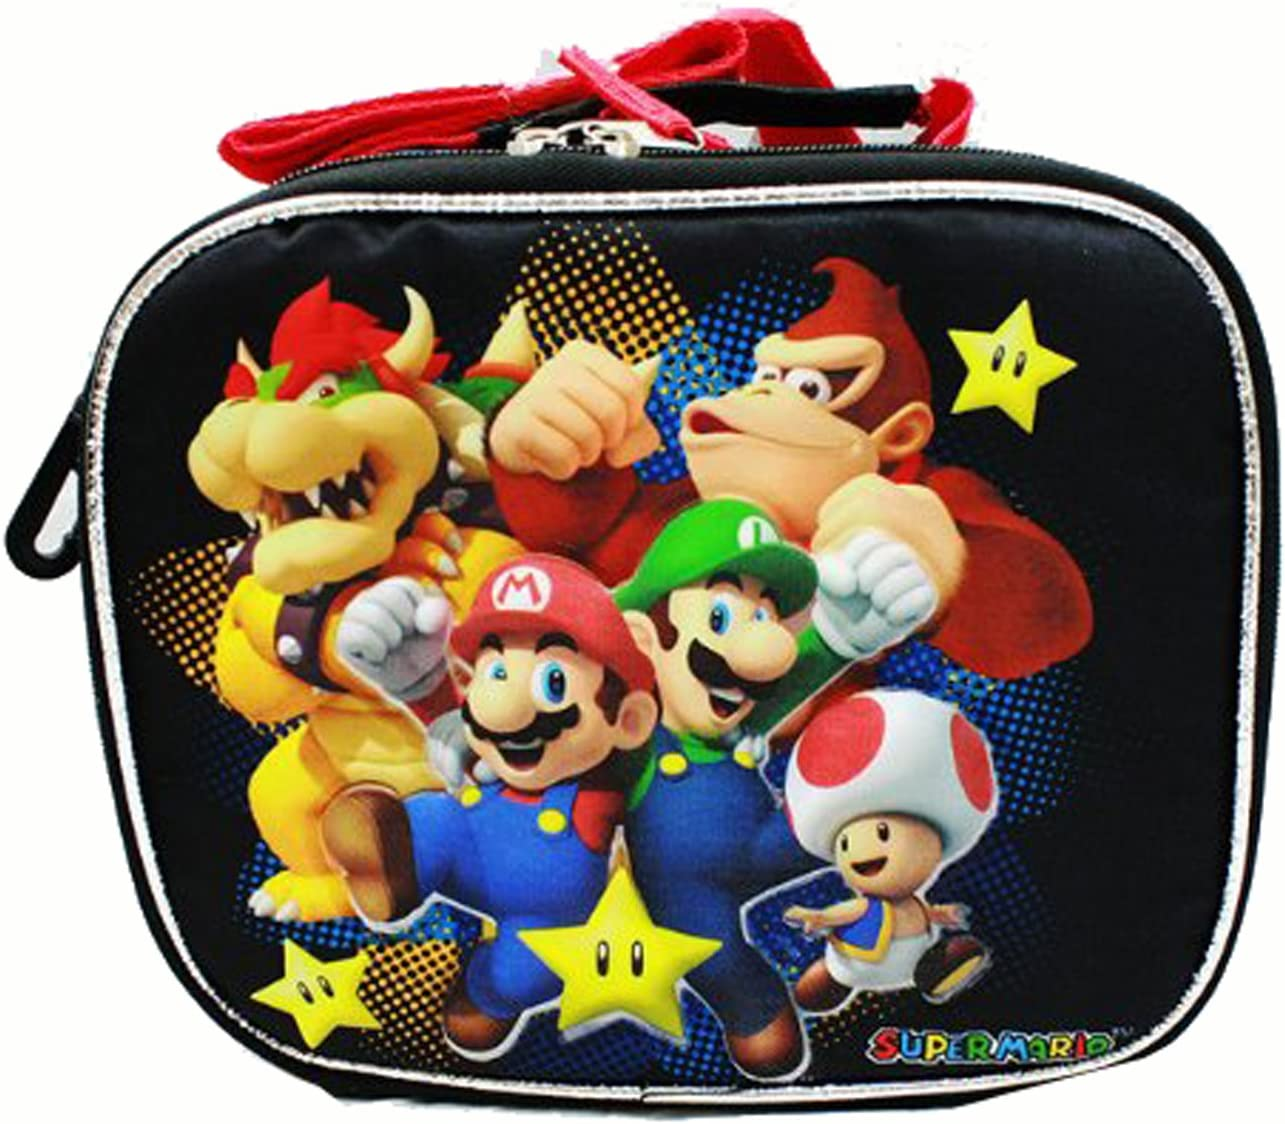 Lunch Bag - Nintendo - Super Mario Bros - Black by Super Mario Brothers: Amazon.es: Juguetes y juegos